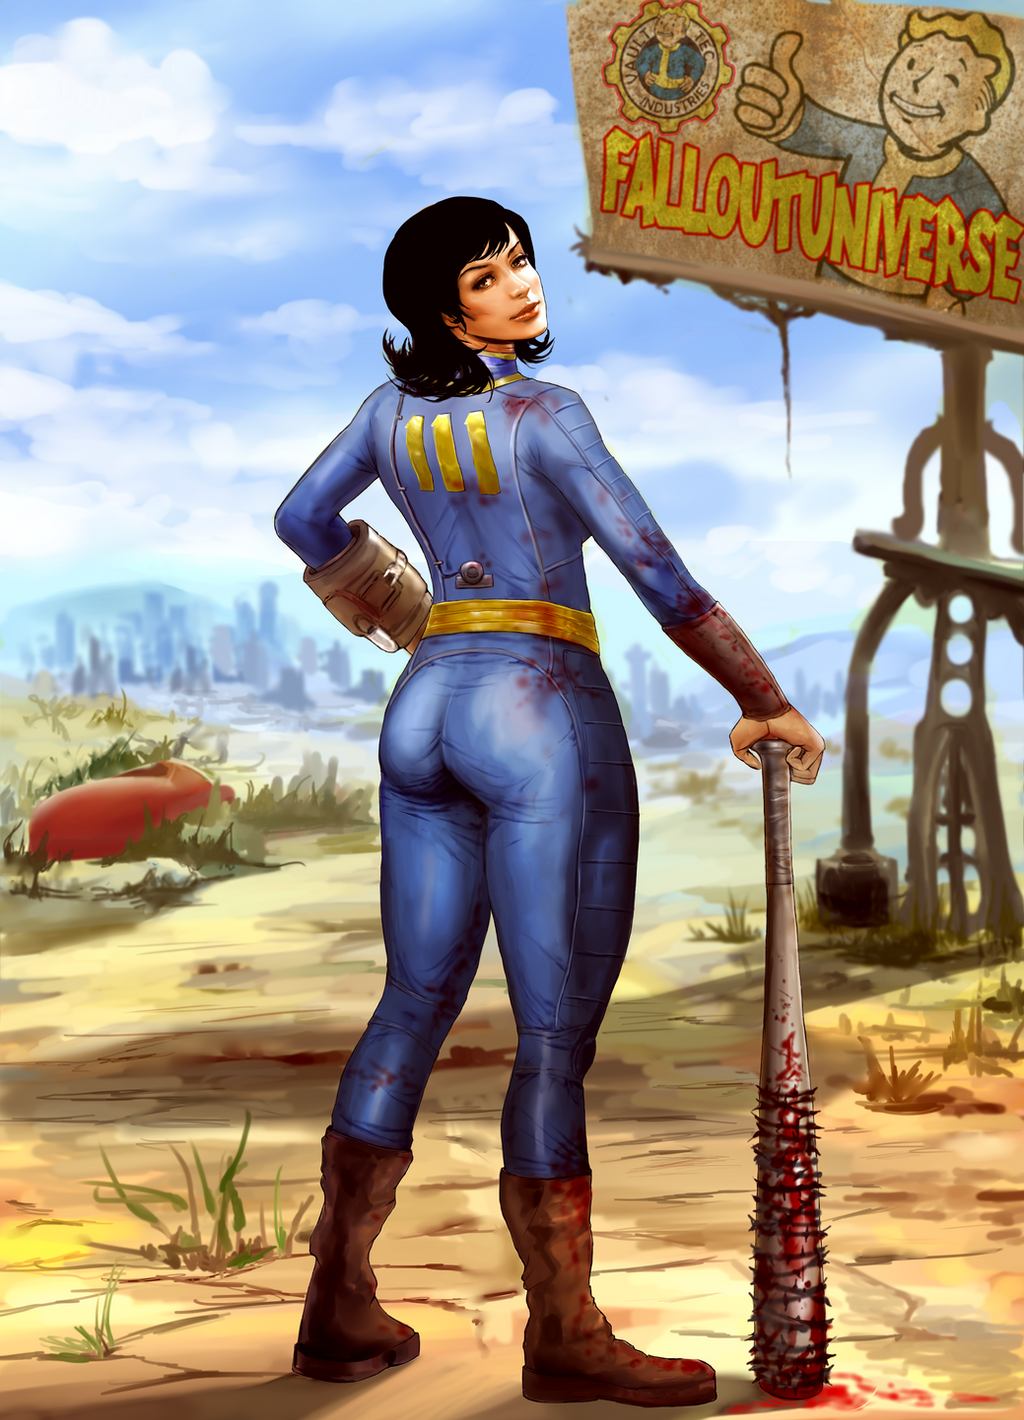 Fallout 4 - Vault Girl Pinup by Galina Zhukovskay - Album on Imgur